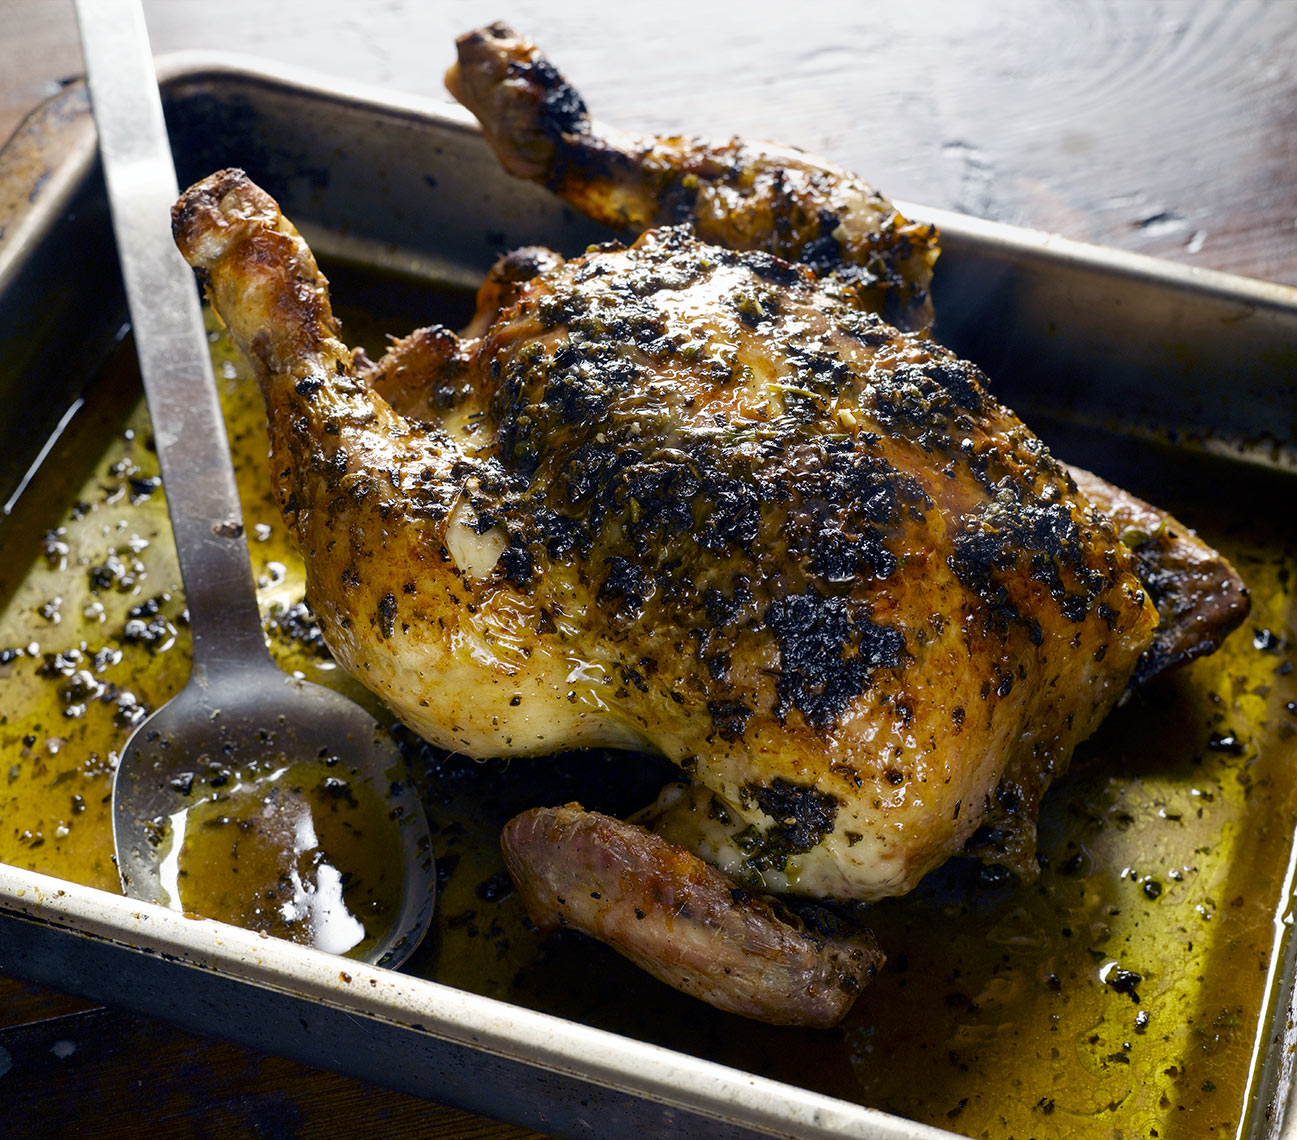 Roast chicken 2 | Colin Campbell - Food Photographer